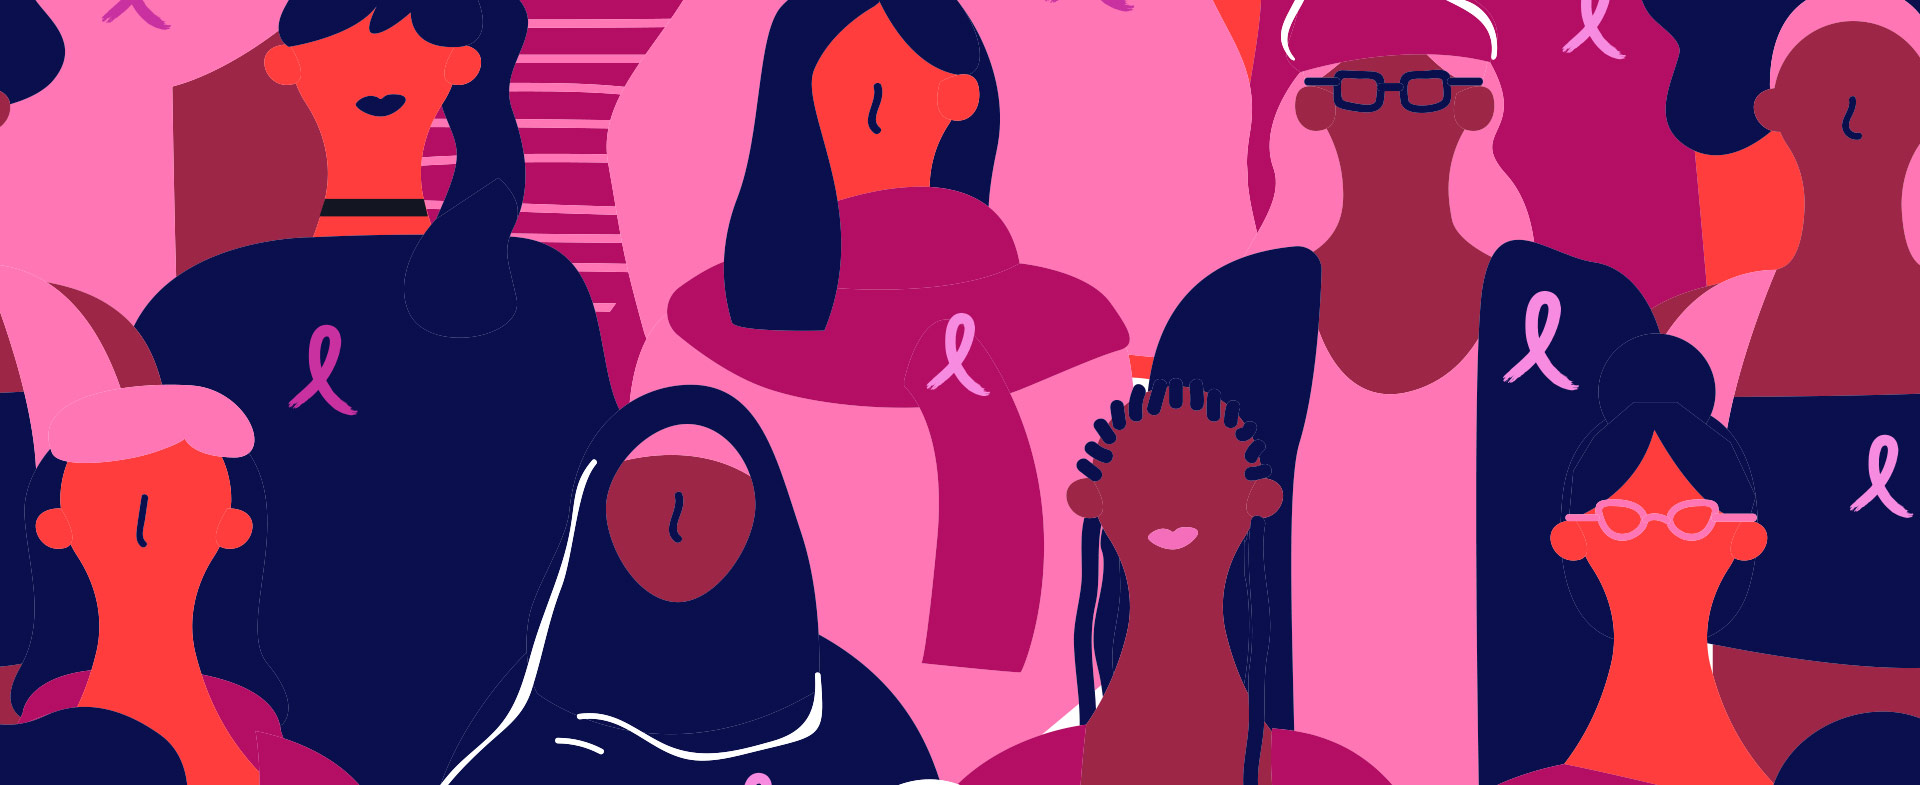 illustration of breast cancer survivors